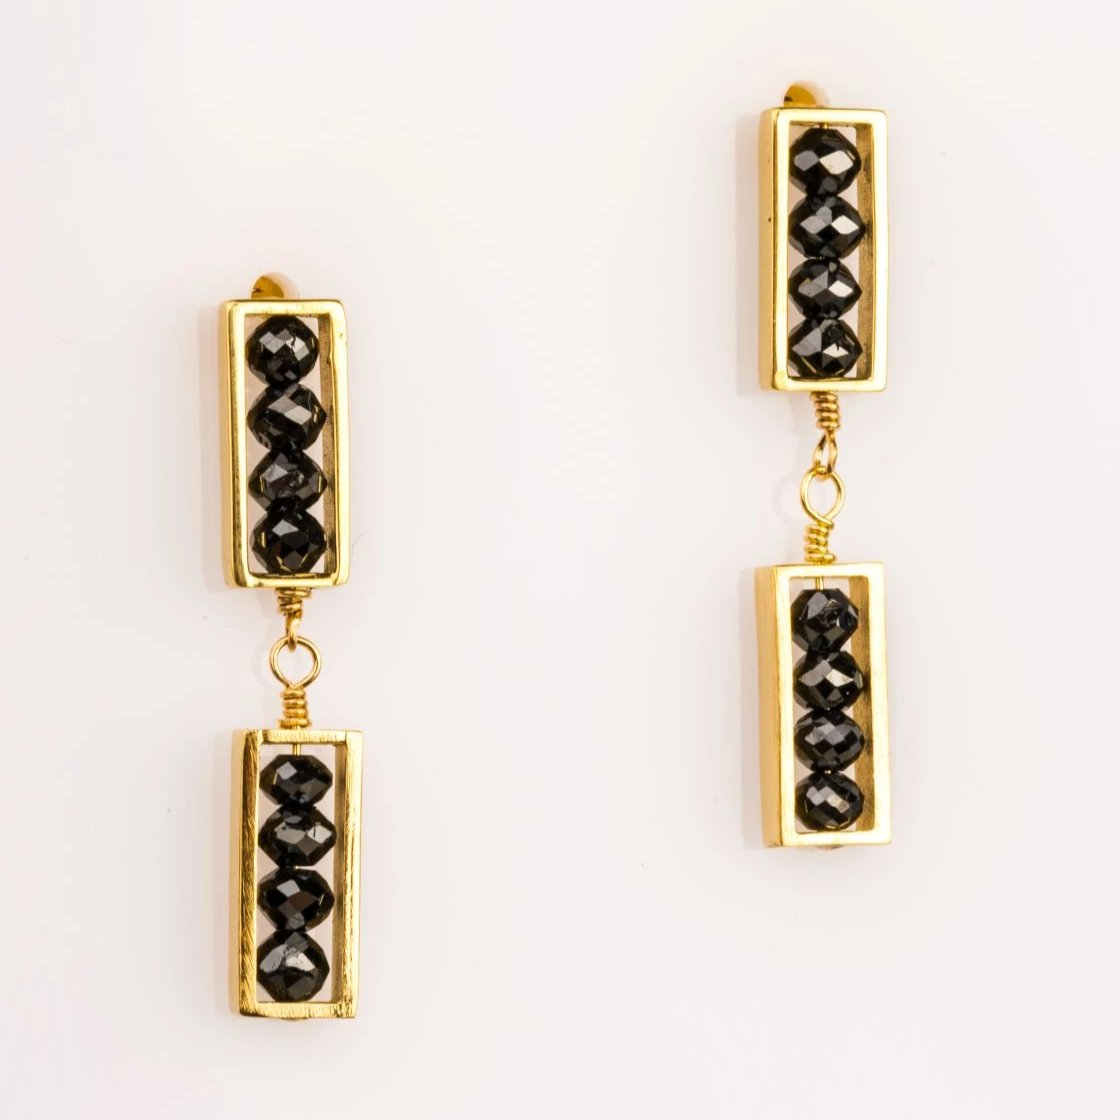 18k yellow gold double mini bar earrings with black diamonds, sydney strong, Greenville, South carolina